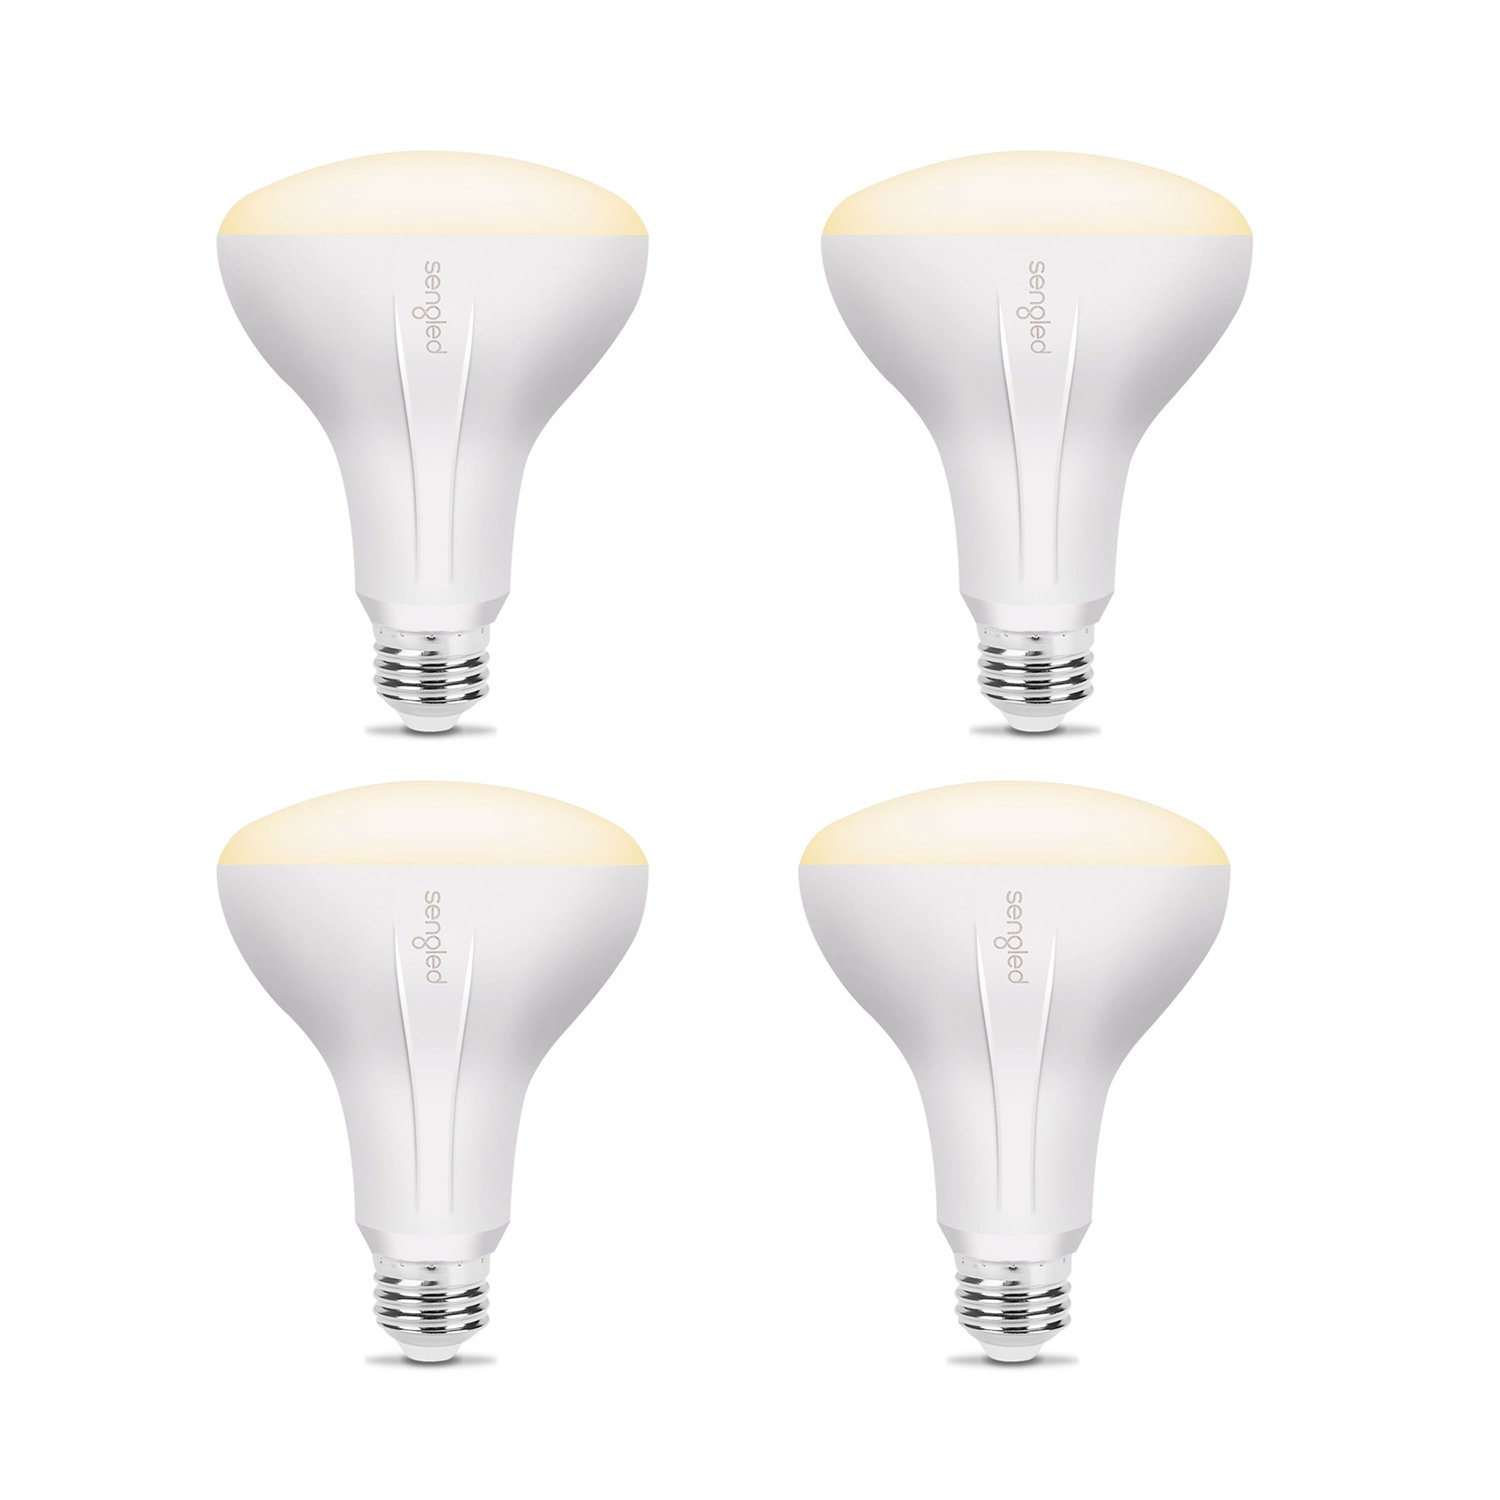 Details About Sengled Element Br30 Smart Flood Light Bulbs Compatible With Smartthings Wink